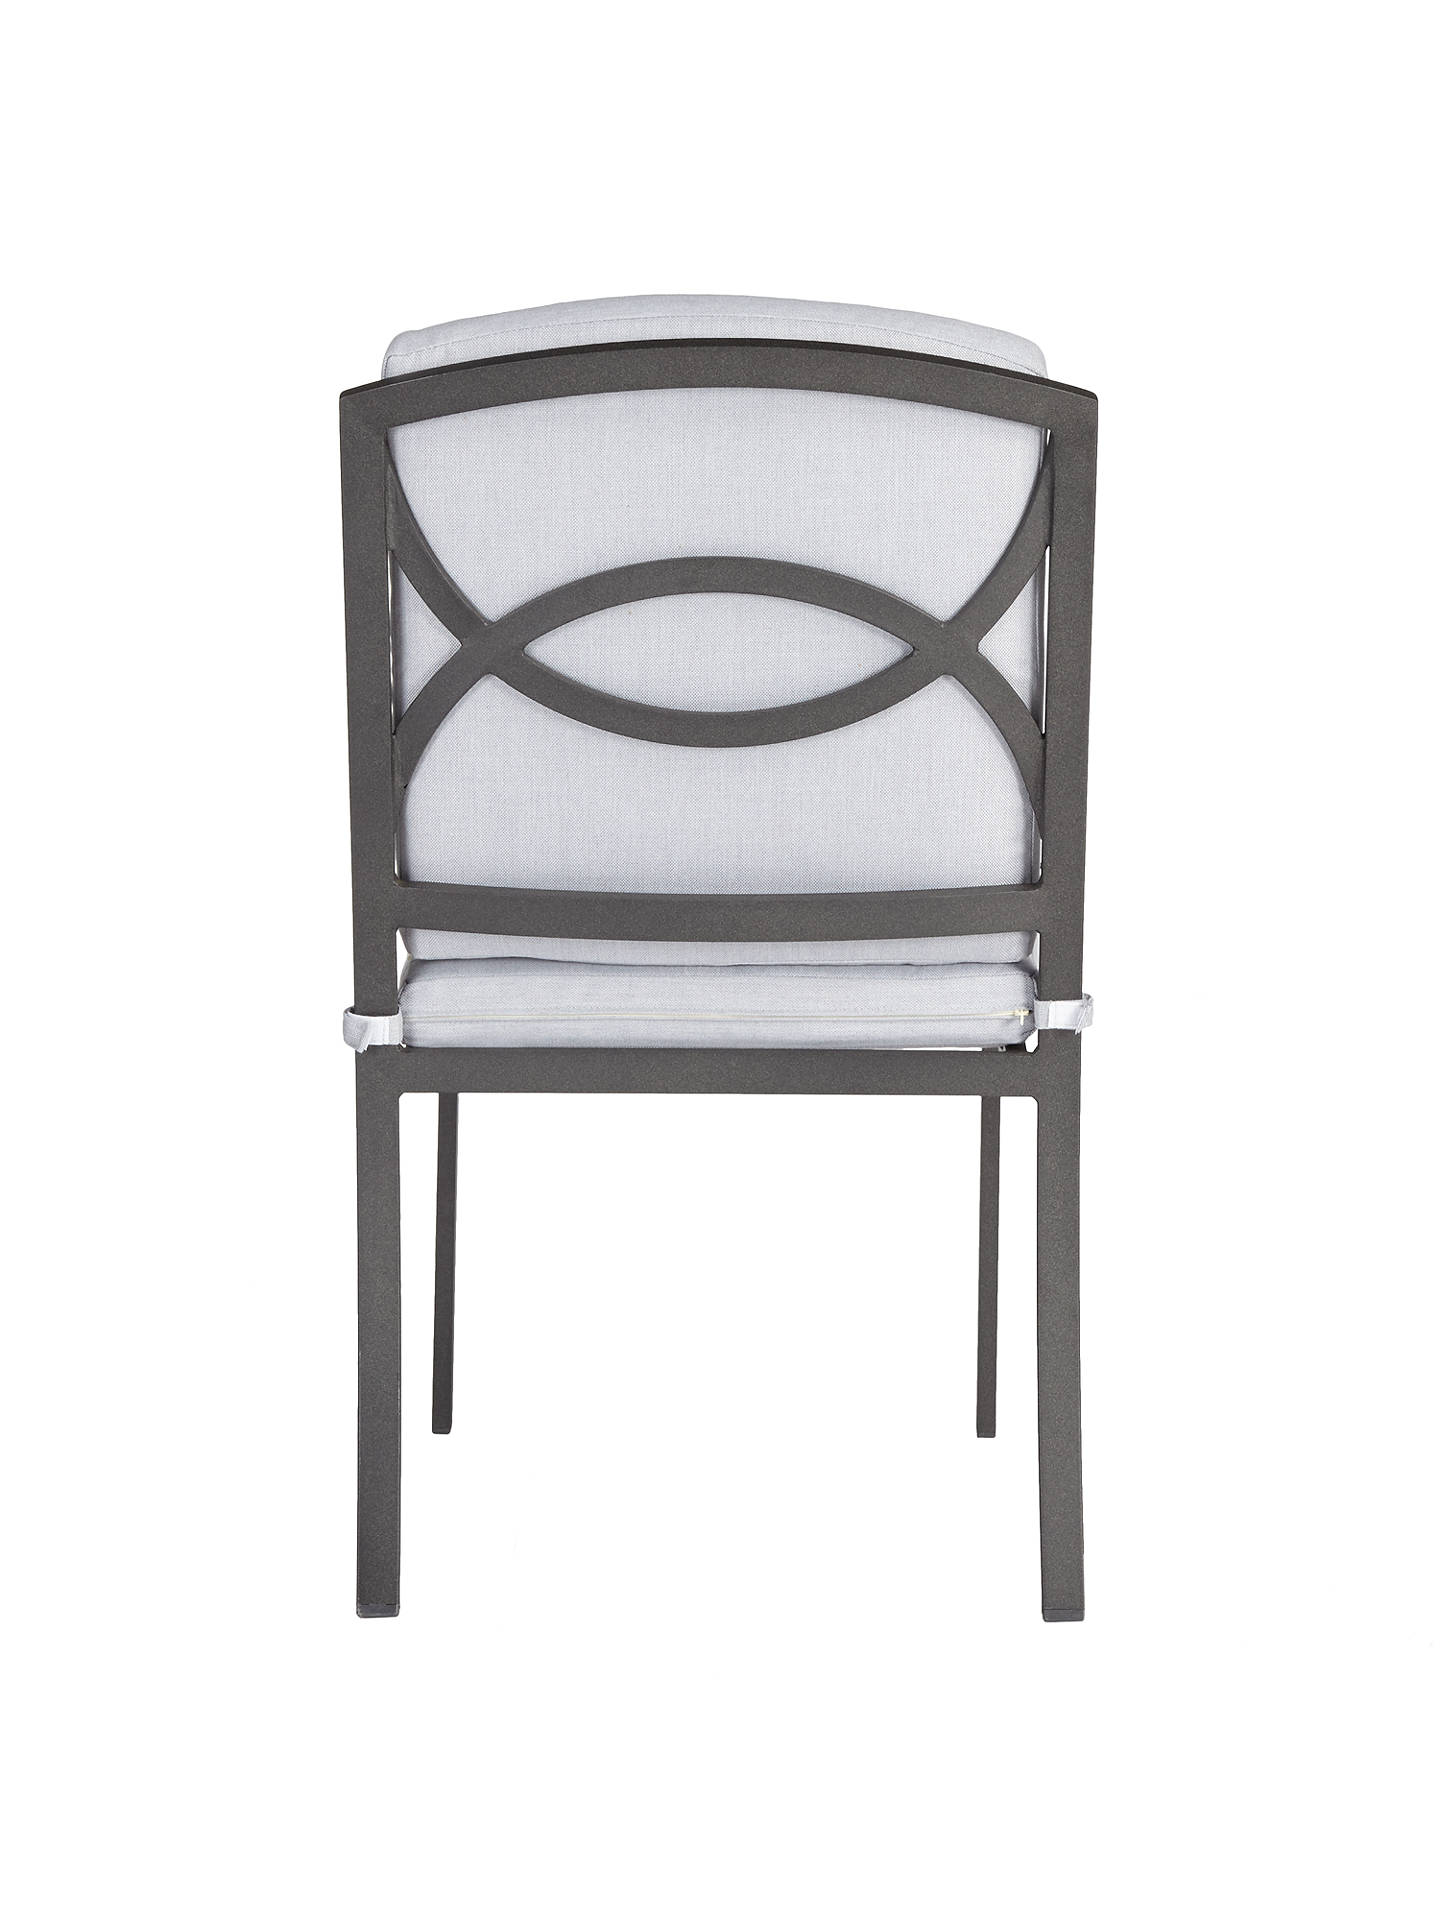 BuyJohn Lewis & Partners Marlow Aluminium Dining Side Chairs, Black/Grey, Set of 2 Online at johnlewis.com